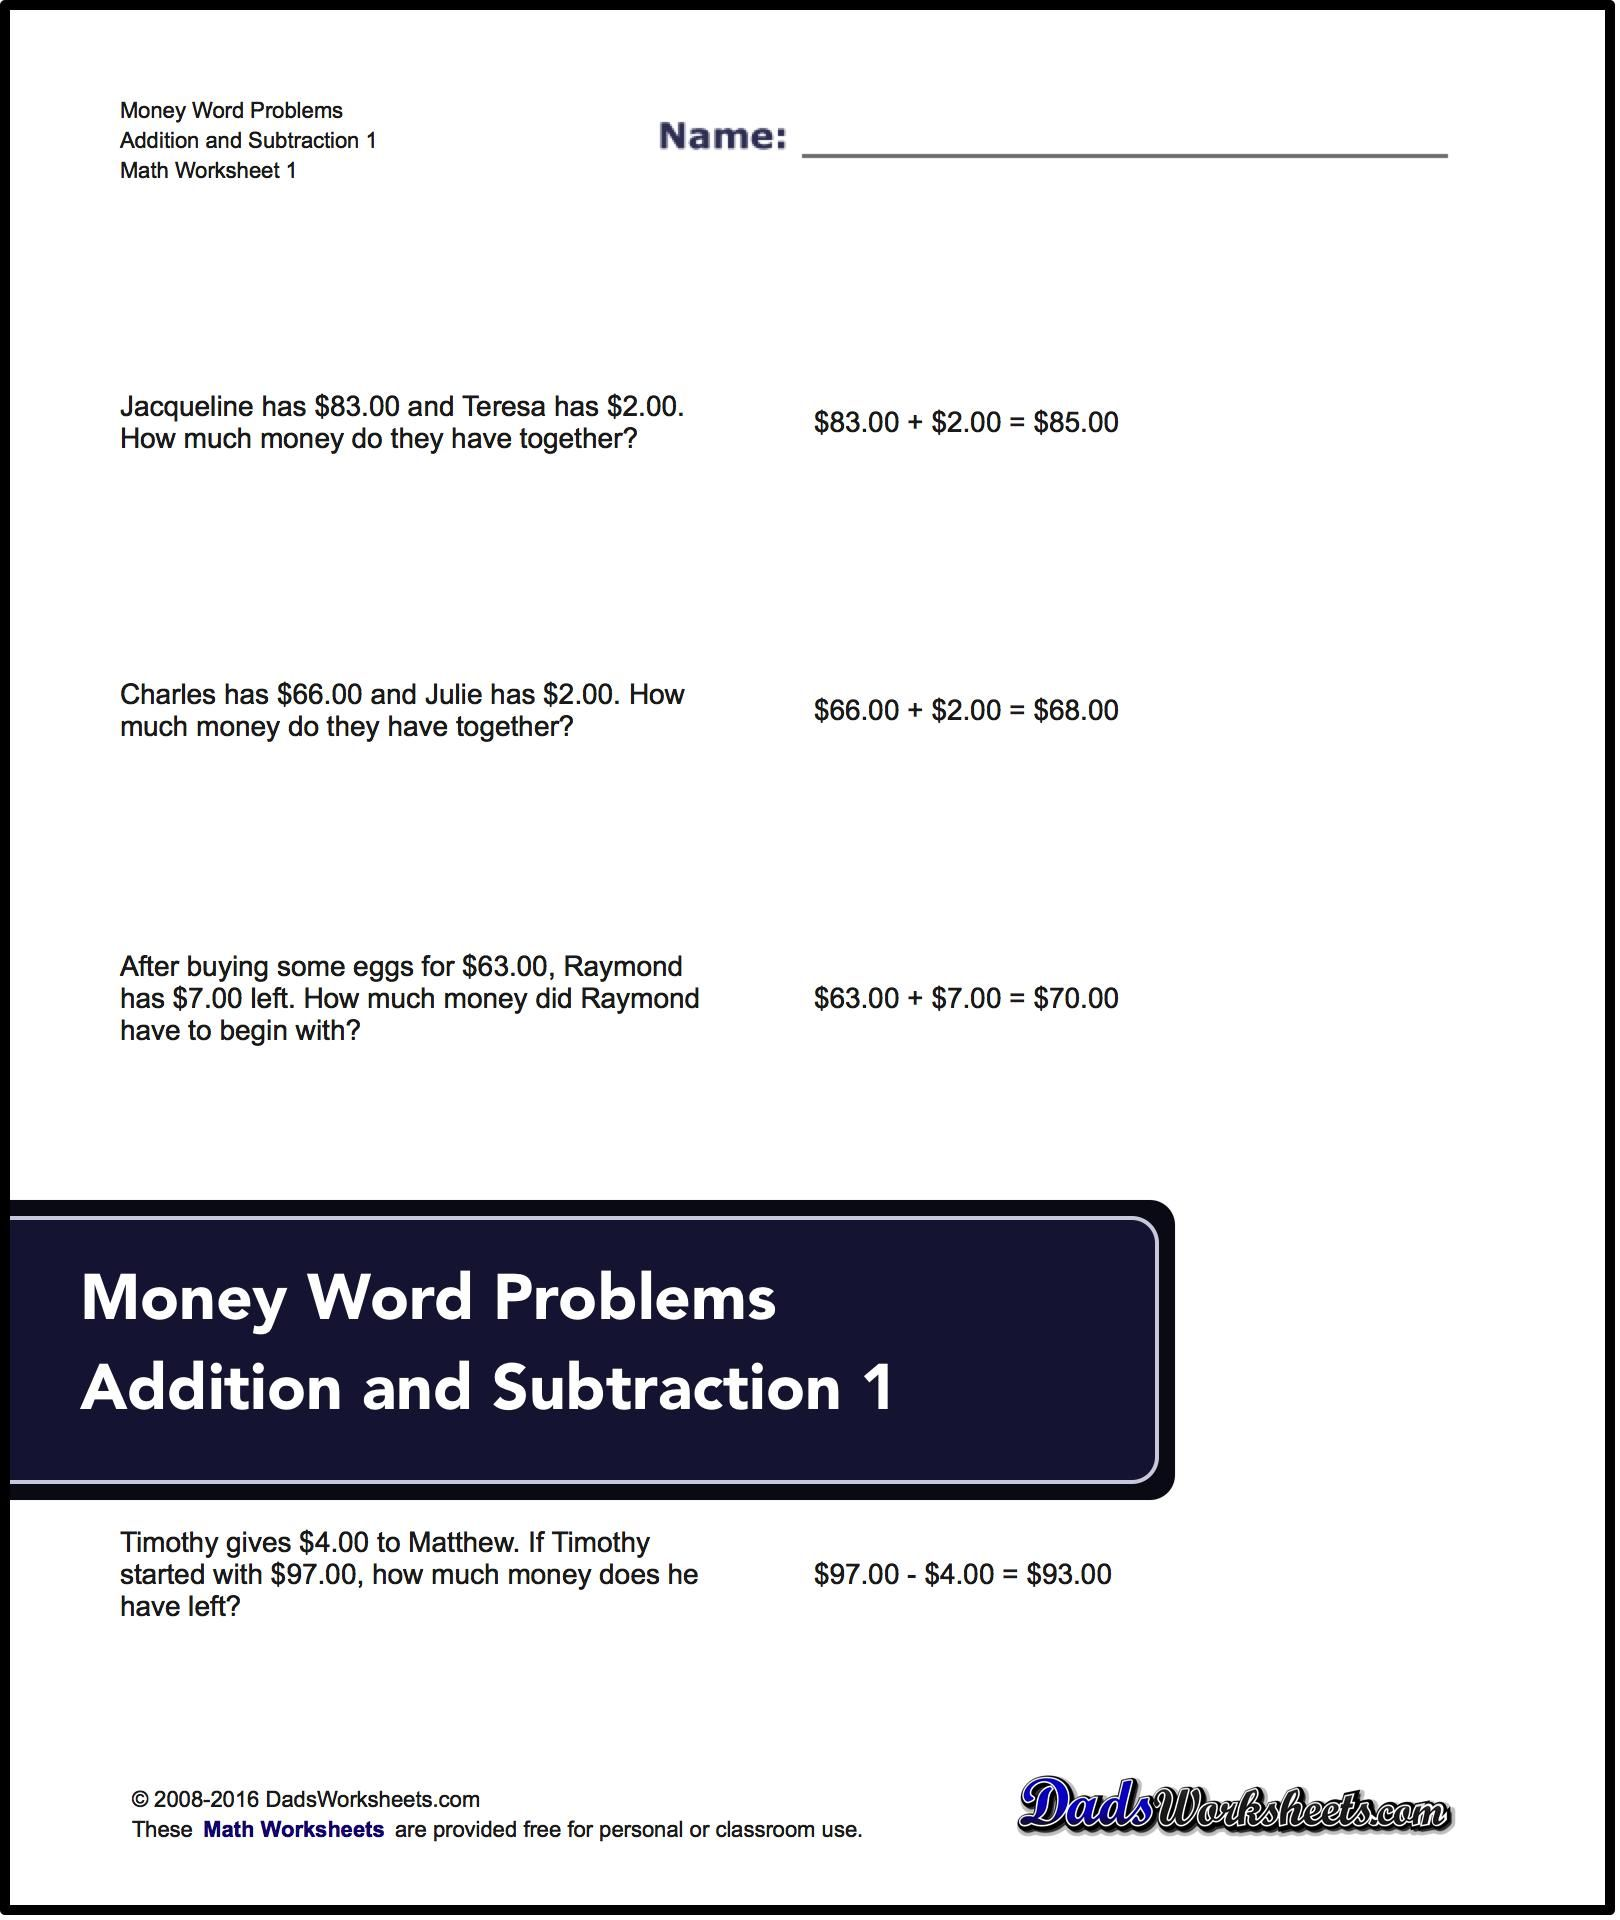 worksheet Money Addition And Subtraction free printable addition and subtraction word problems for money all with answer keys